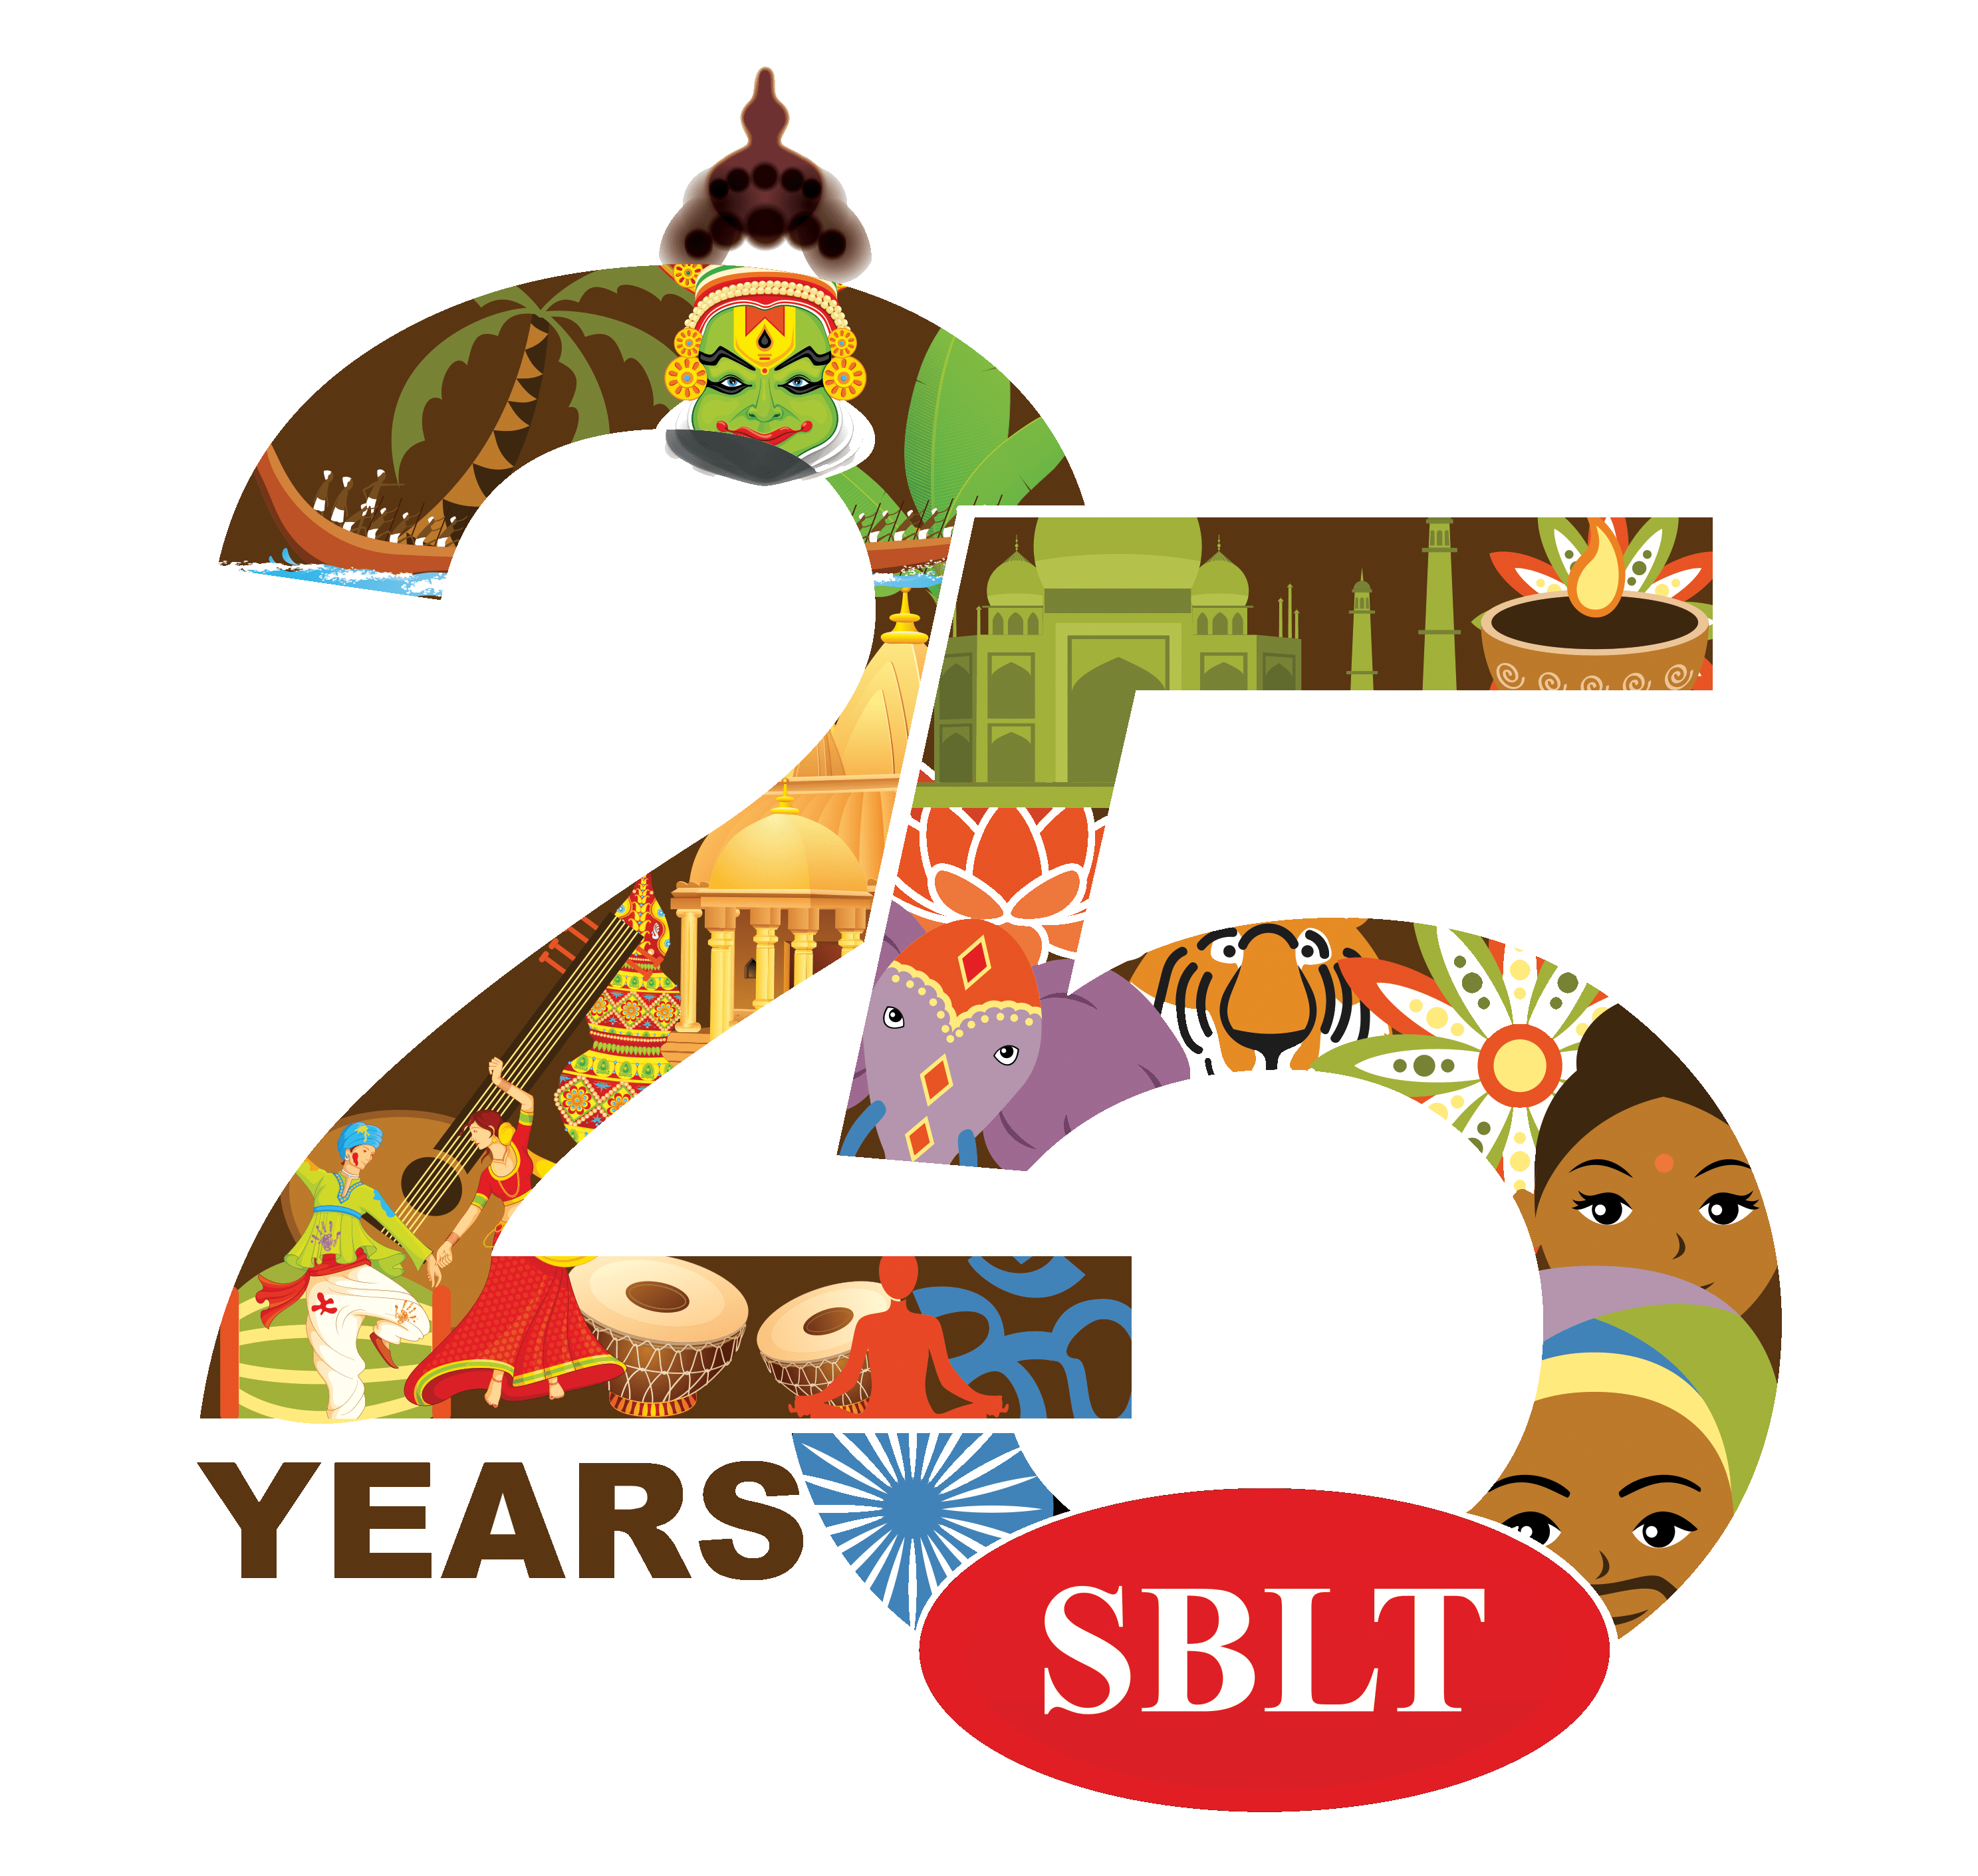 SBLT-25-years Sblt Tours and Travels